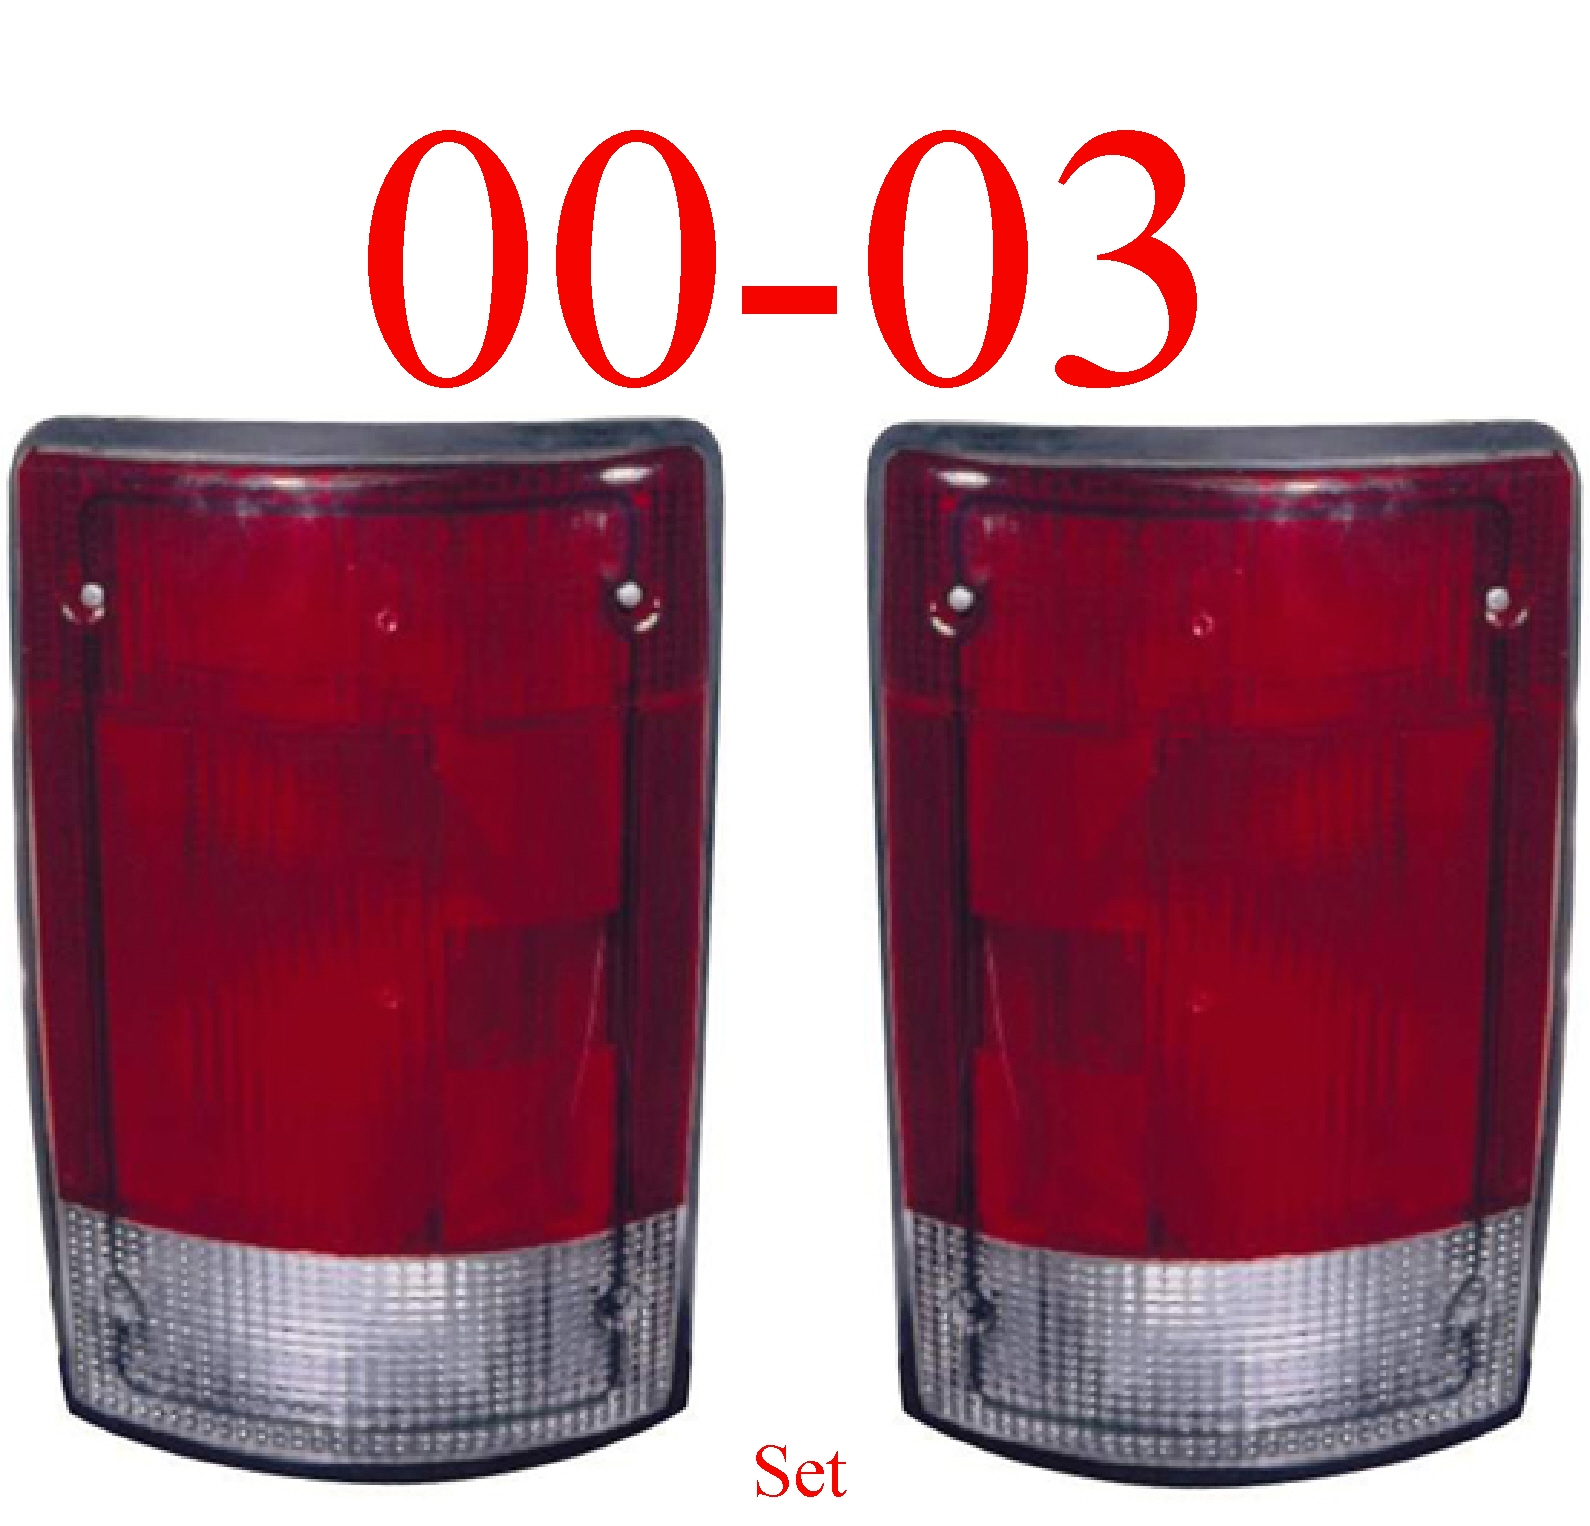 00-03 Ford Excursion Left & Right Tail Light Set